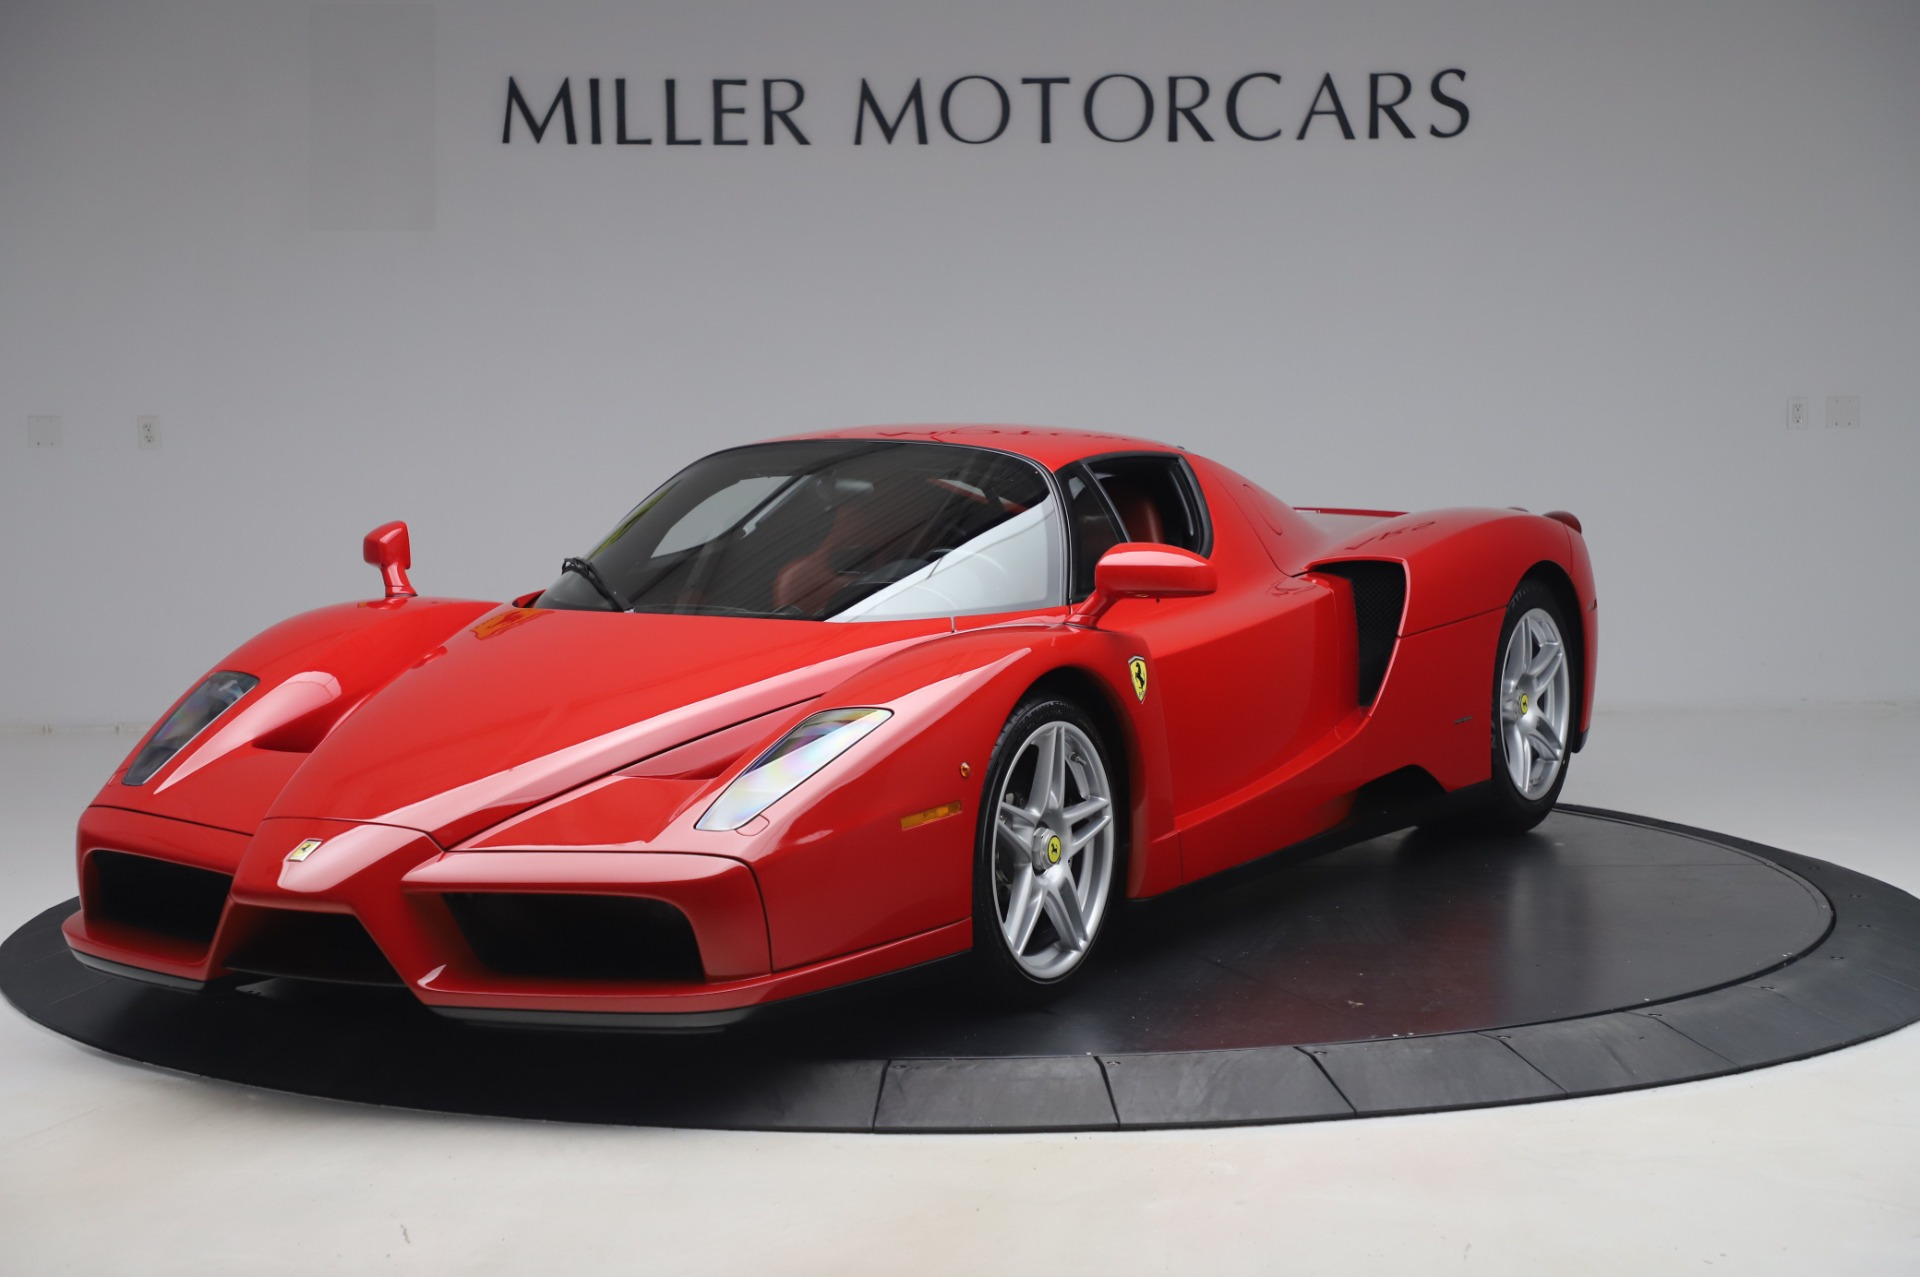 Used 2003 Ferrari Enzo for sale $3,195,000 at Bentley Greenwich in Greenwich CT 06830 1